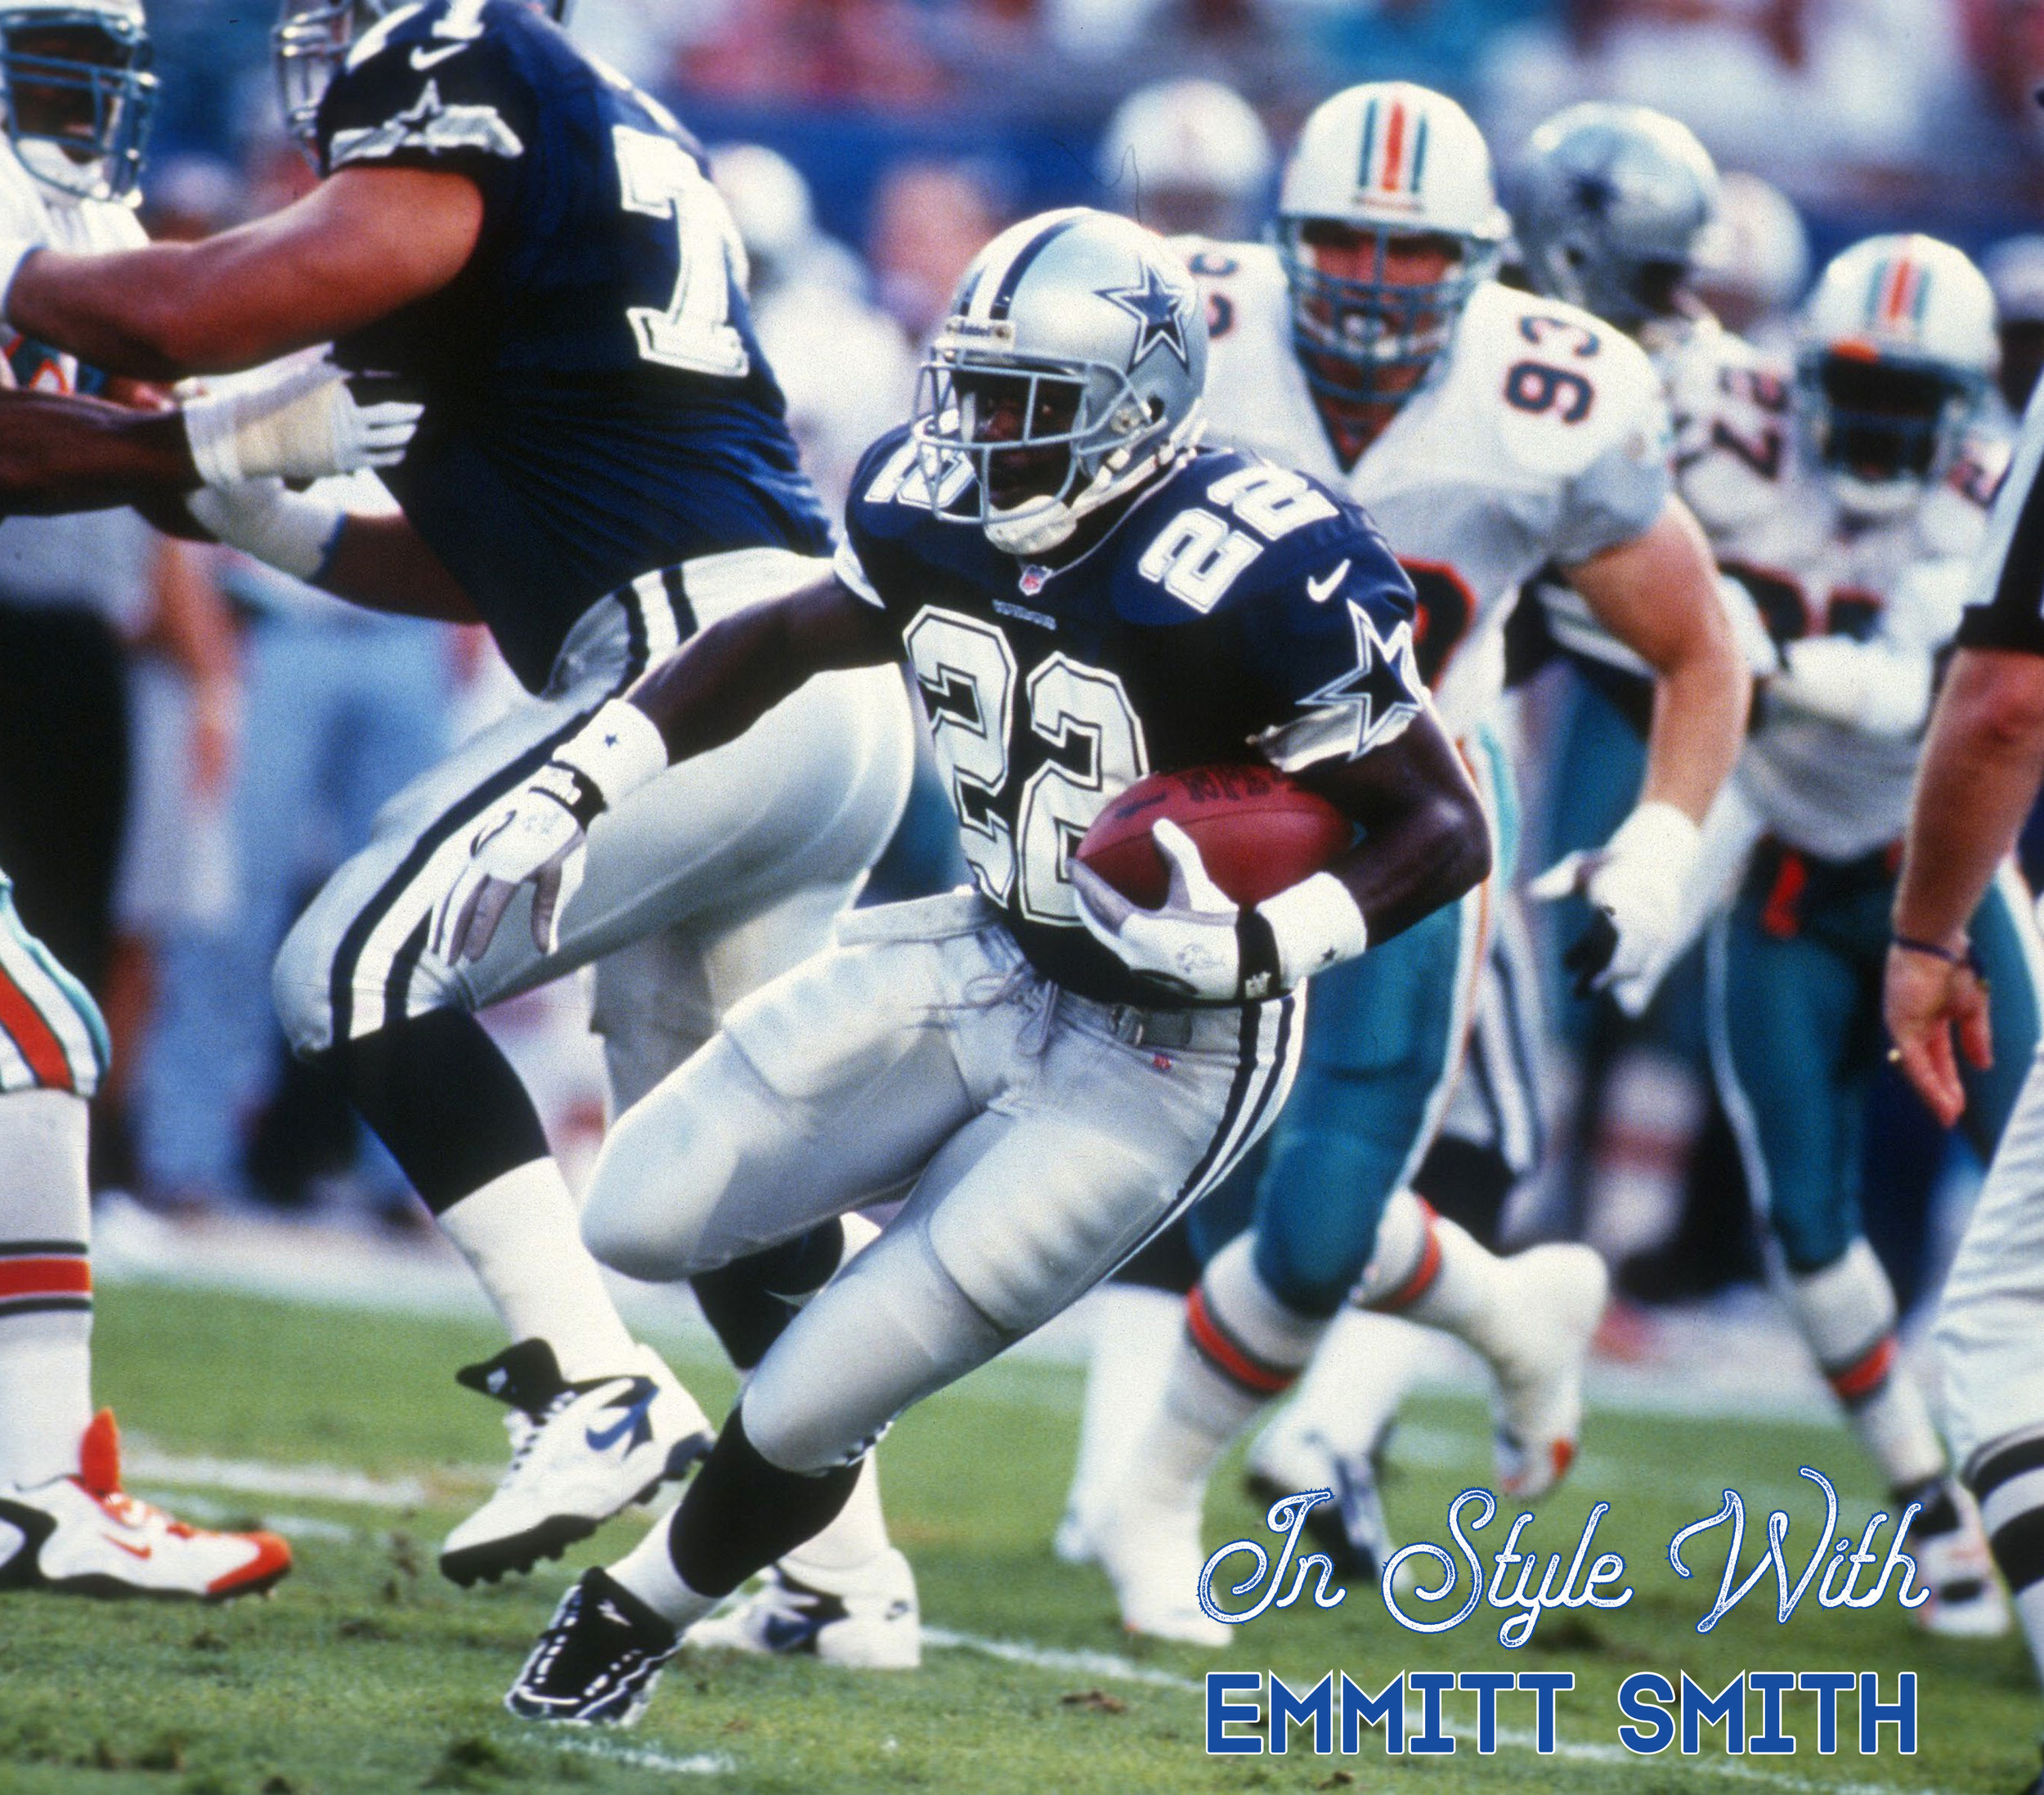 AM FEB IN STYLE WITH EMMITT SMITH-1.jpg